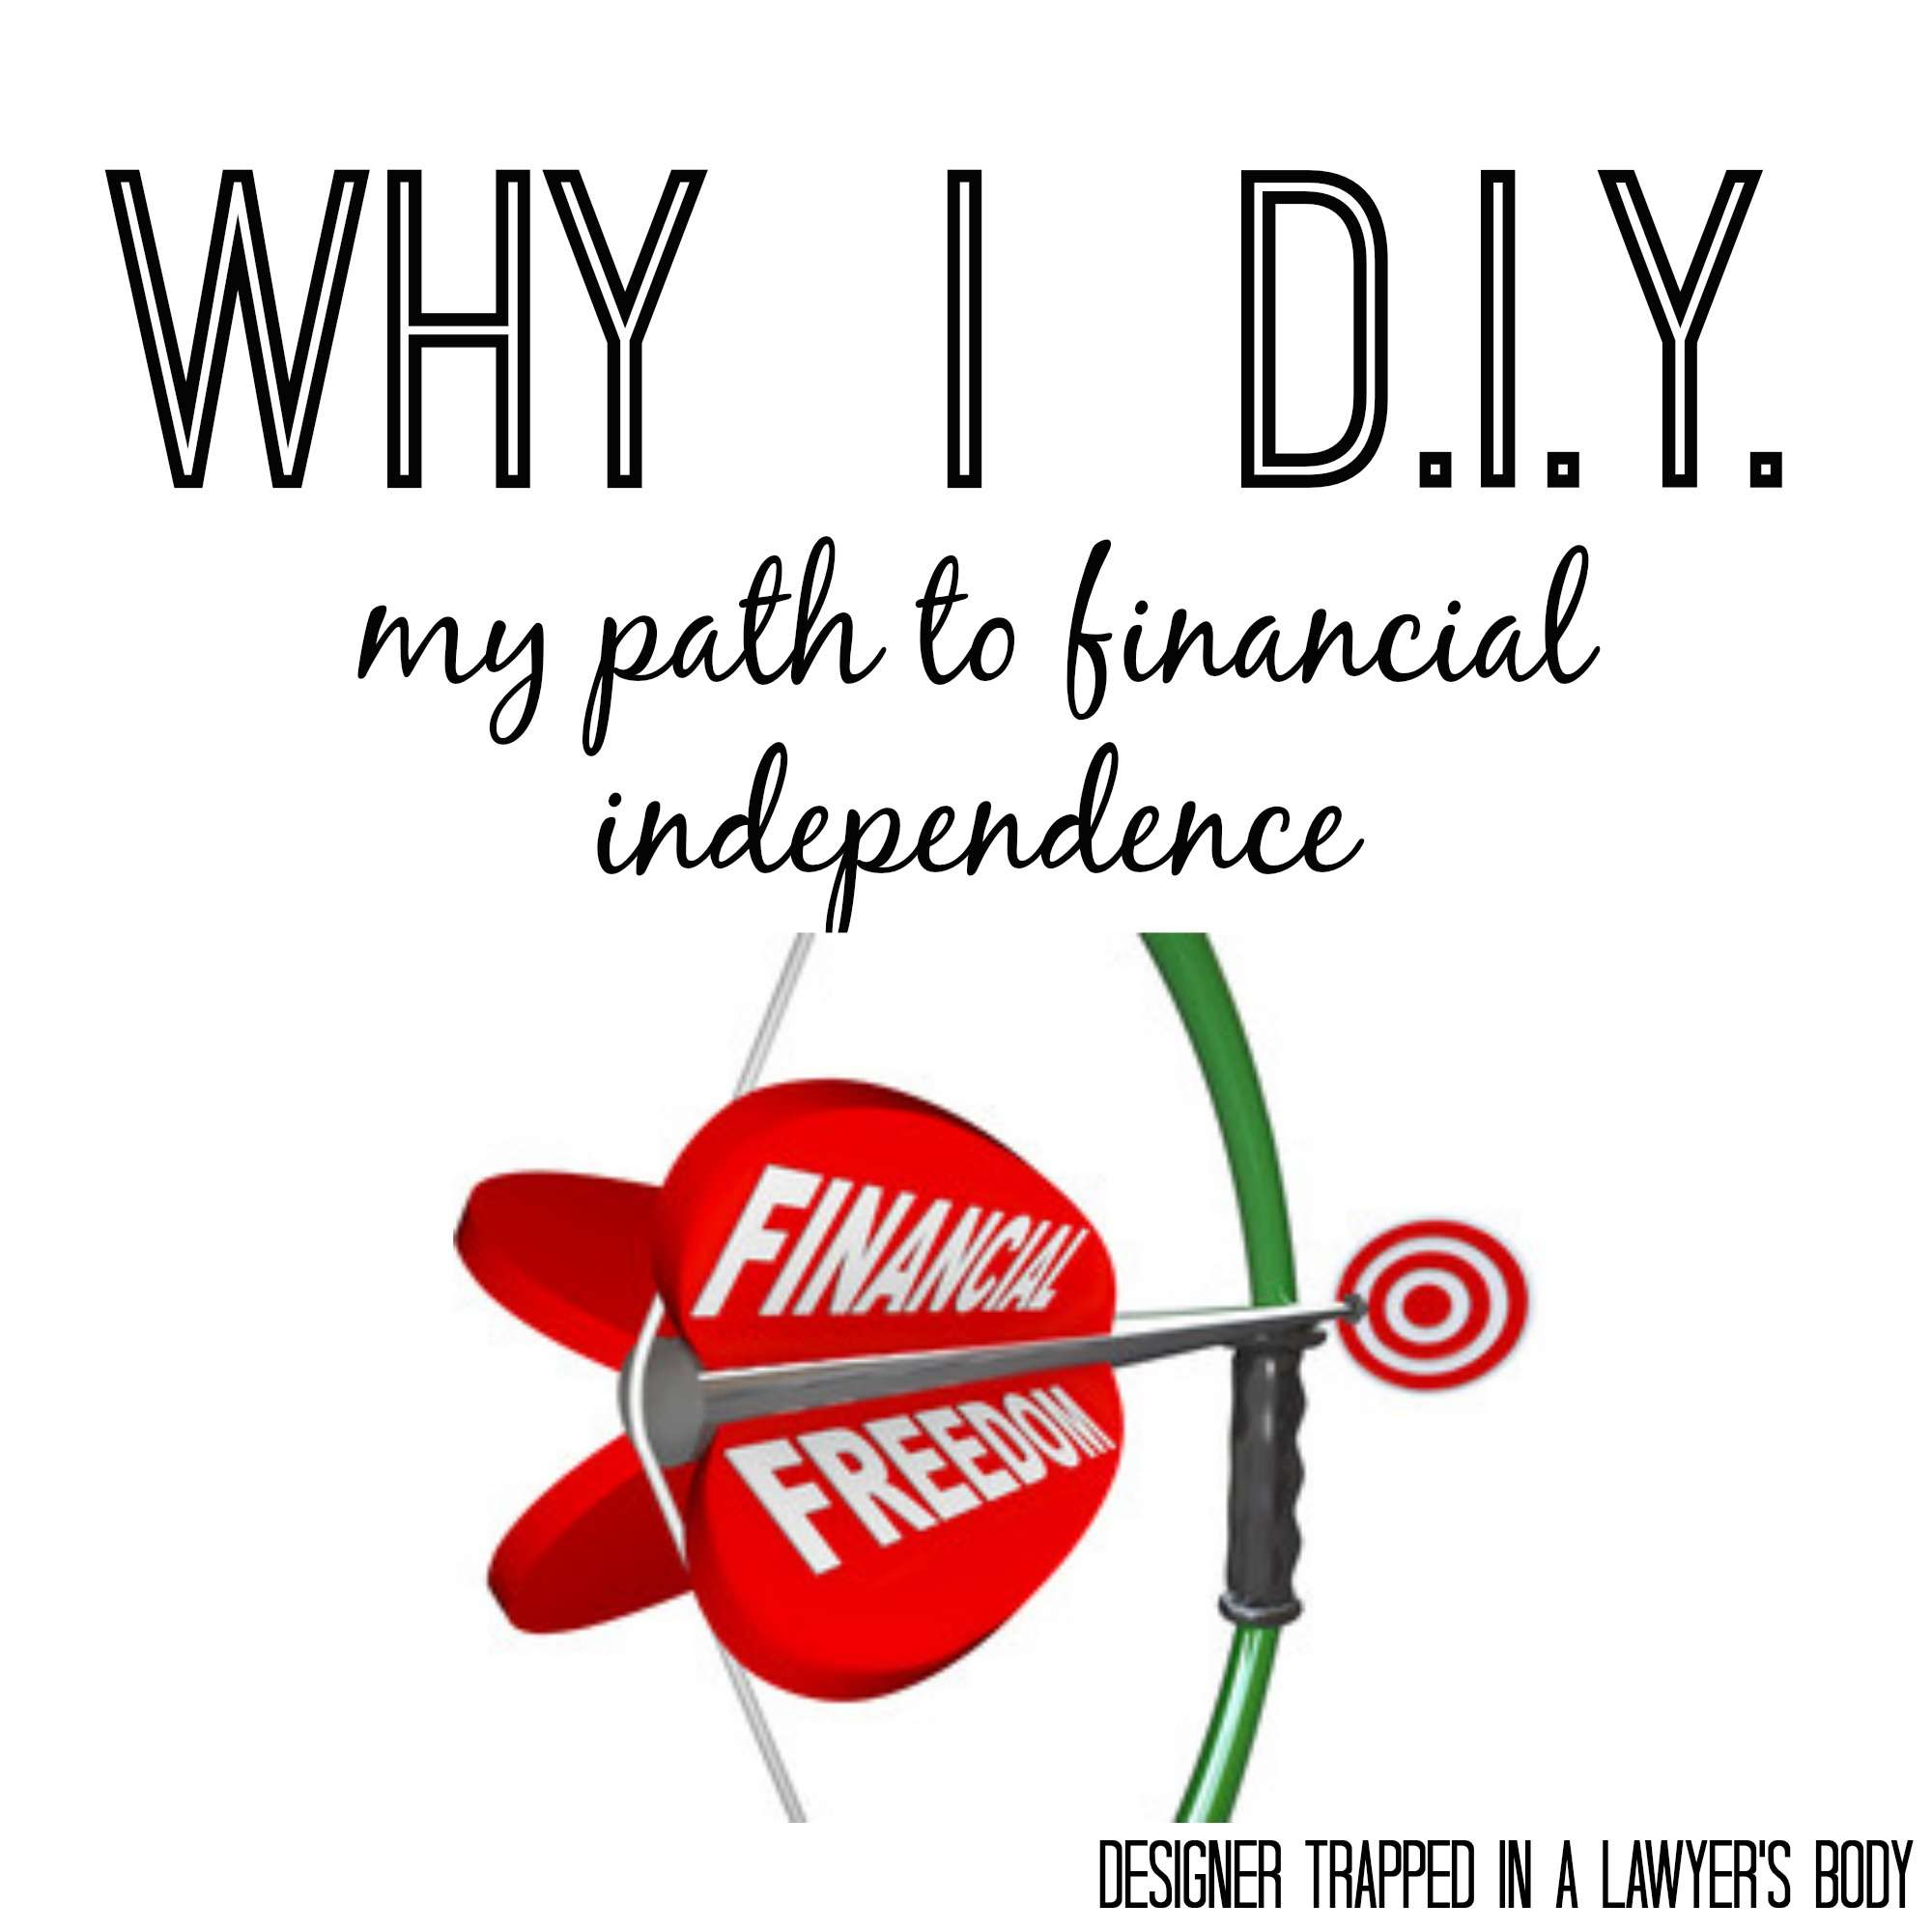 Working toward financial independence by Designer Trapped in a Lawyer's Body. #my360independence #ad